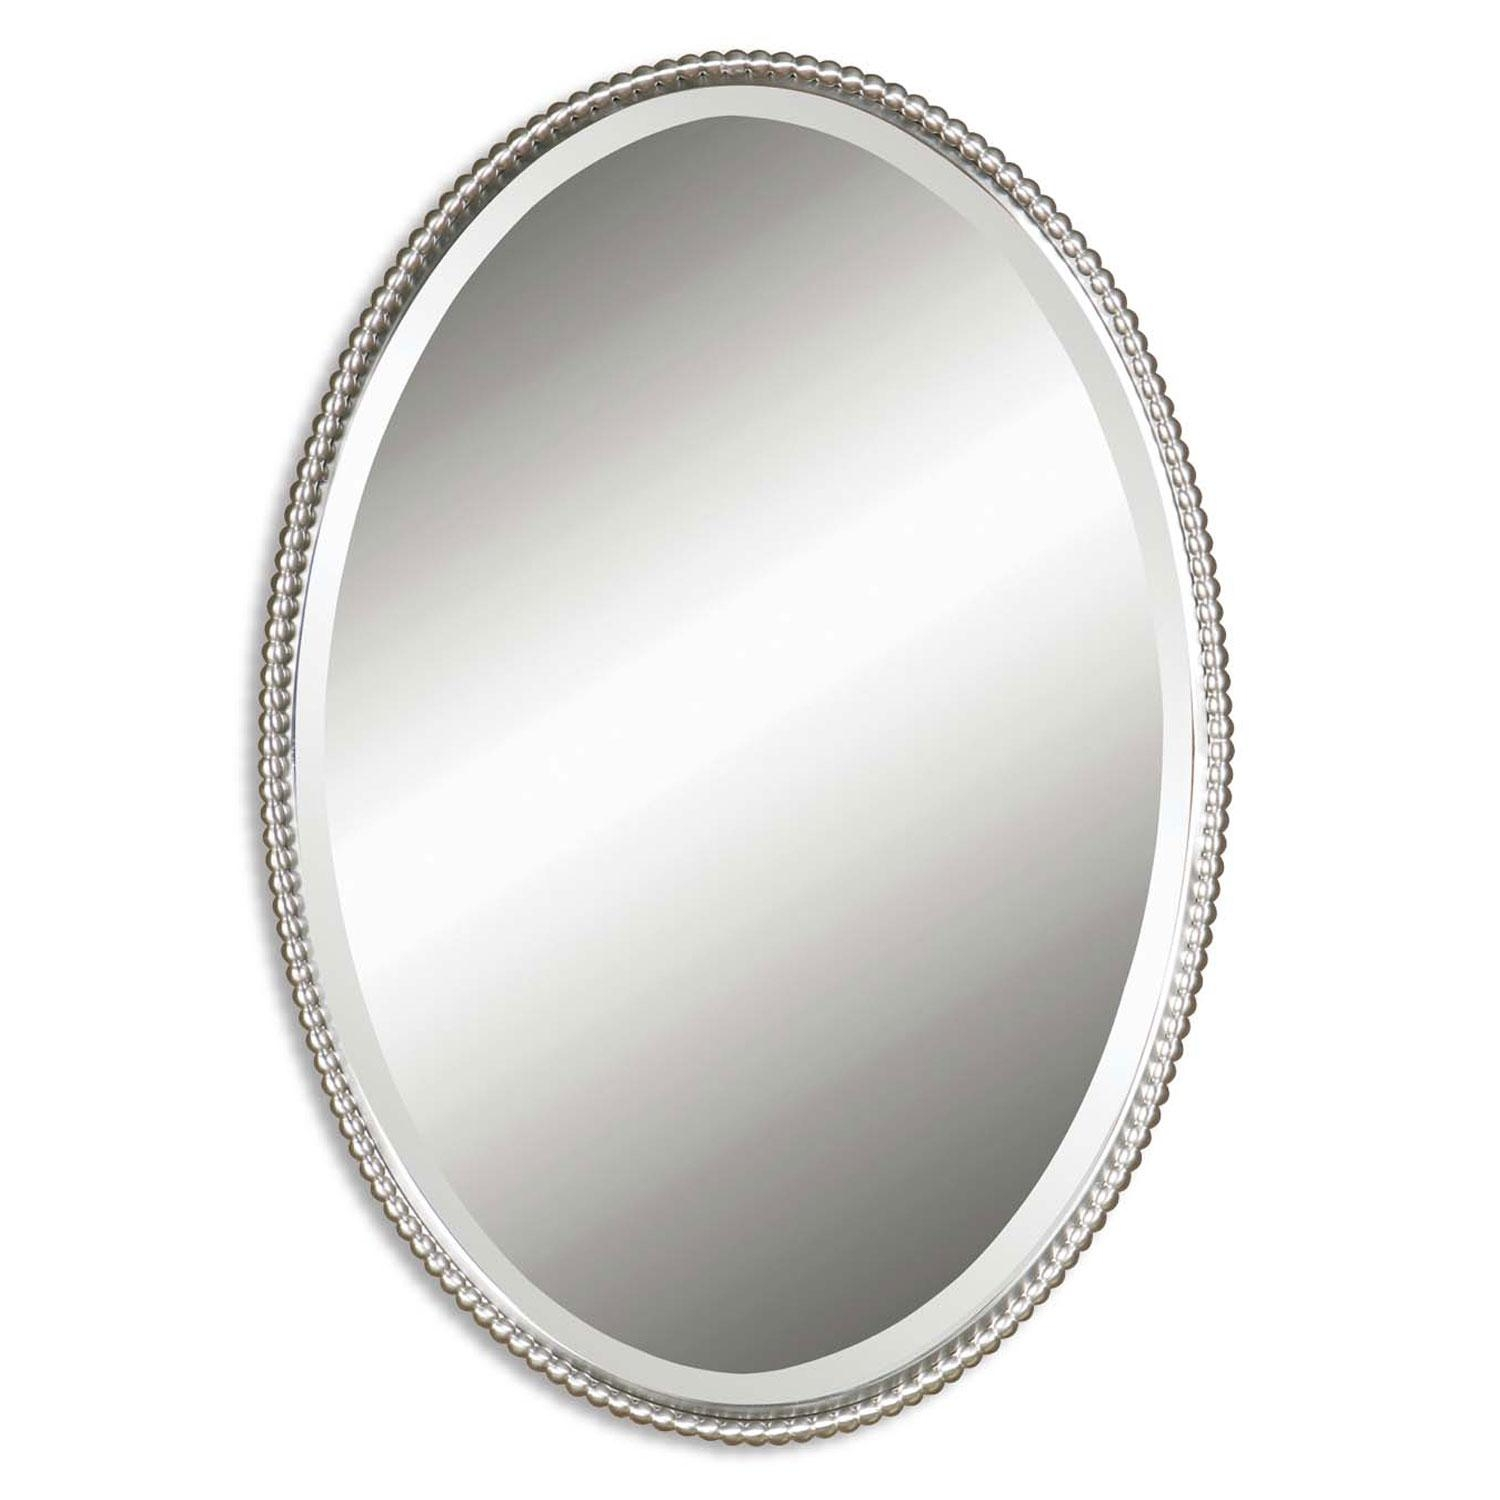 Sherise Brushed Nickel Oval Mirror Uttermost Wall Mirror Mirrors Within Large Oval Mirror (Image 19 of 20)